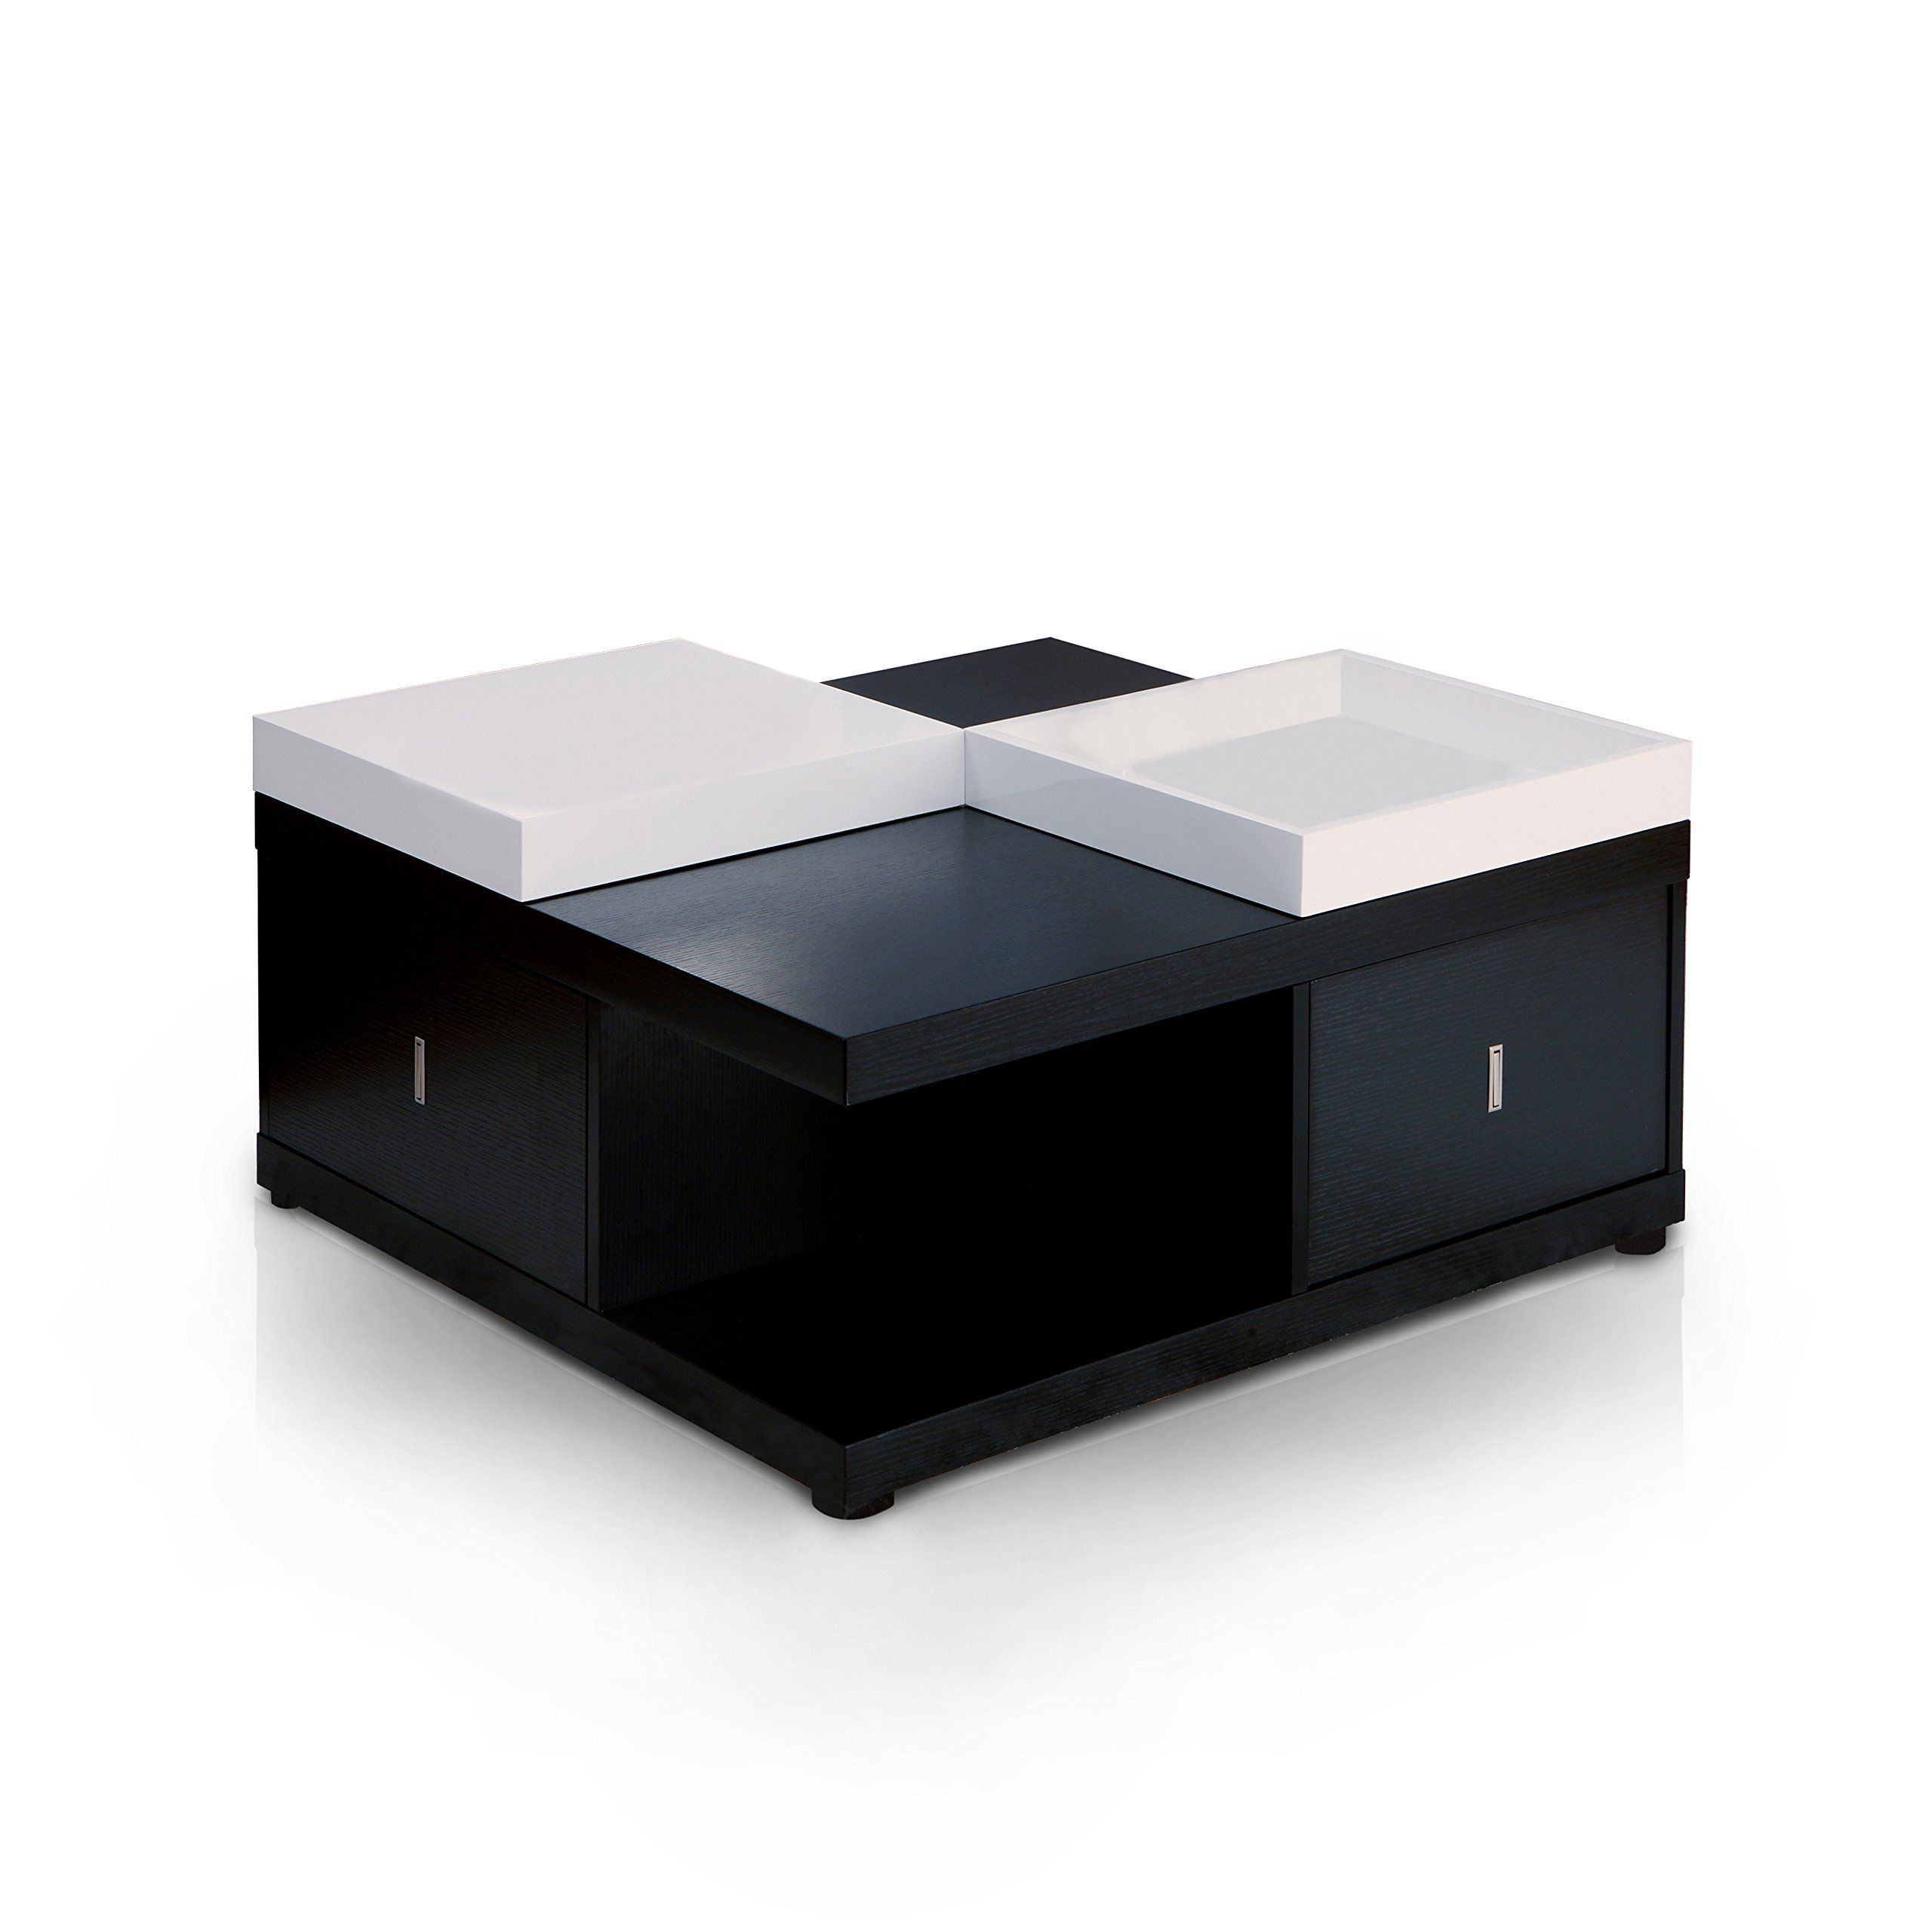 Iohomes Morgan Square Coffee Table With Serving Tray Black See This Great Product This Is An Aff Coffee Table Square Black Square Coffee Table Coffee Table [ 2560 x 2560 Pixel ]